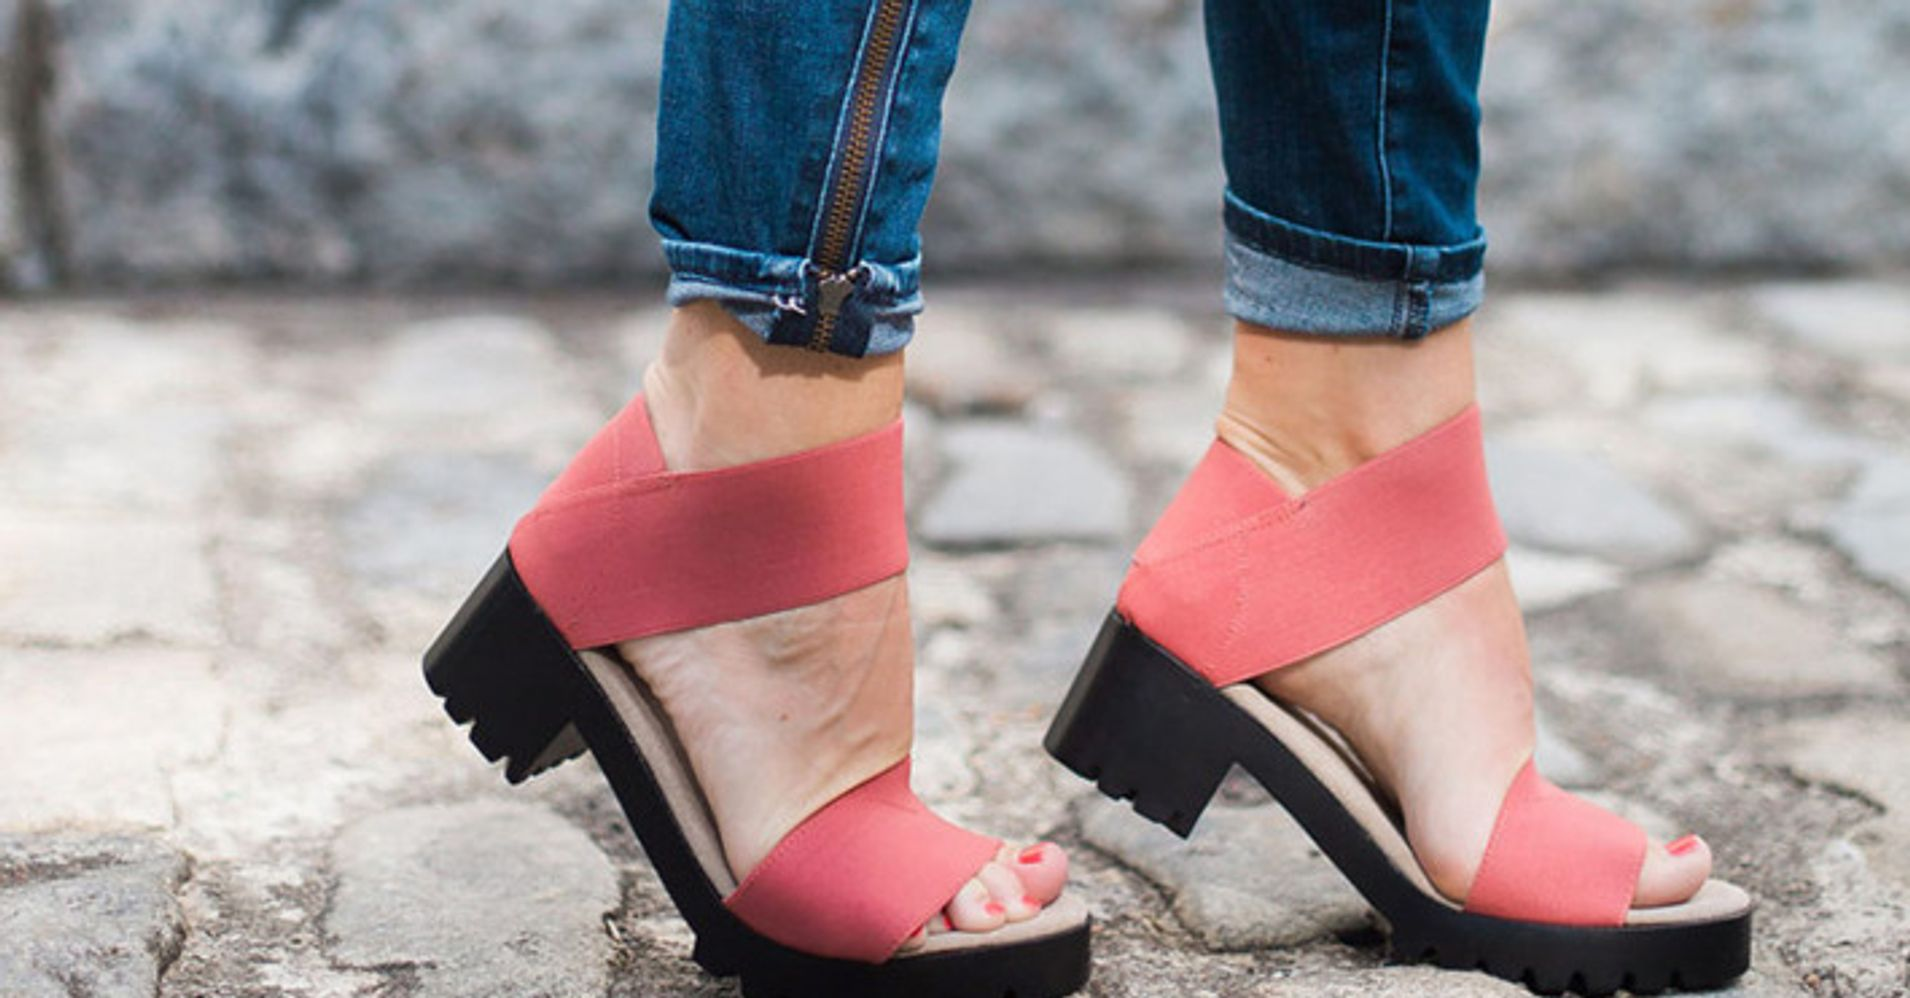 These 100 Grandma Sandals Are More Comfortable Than